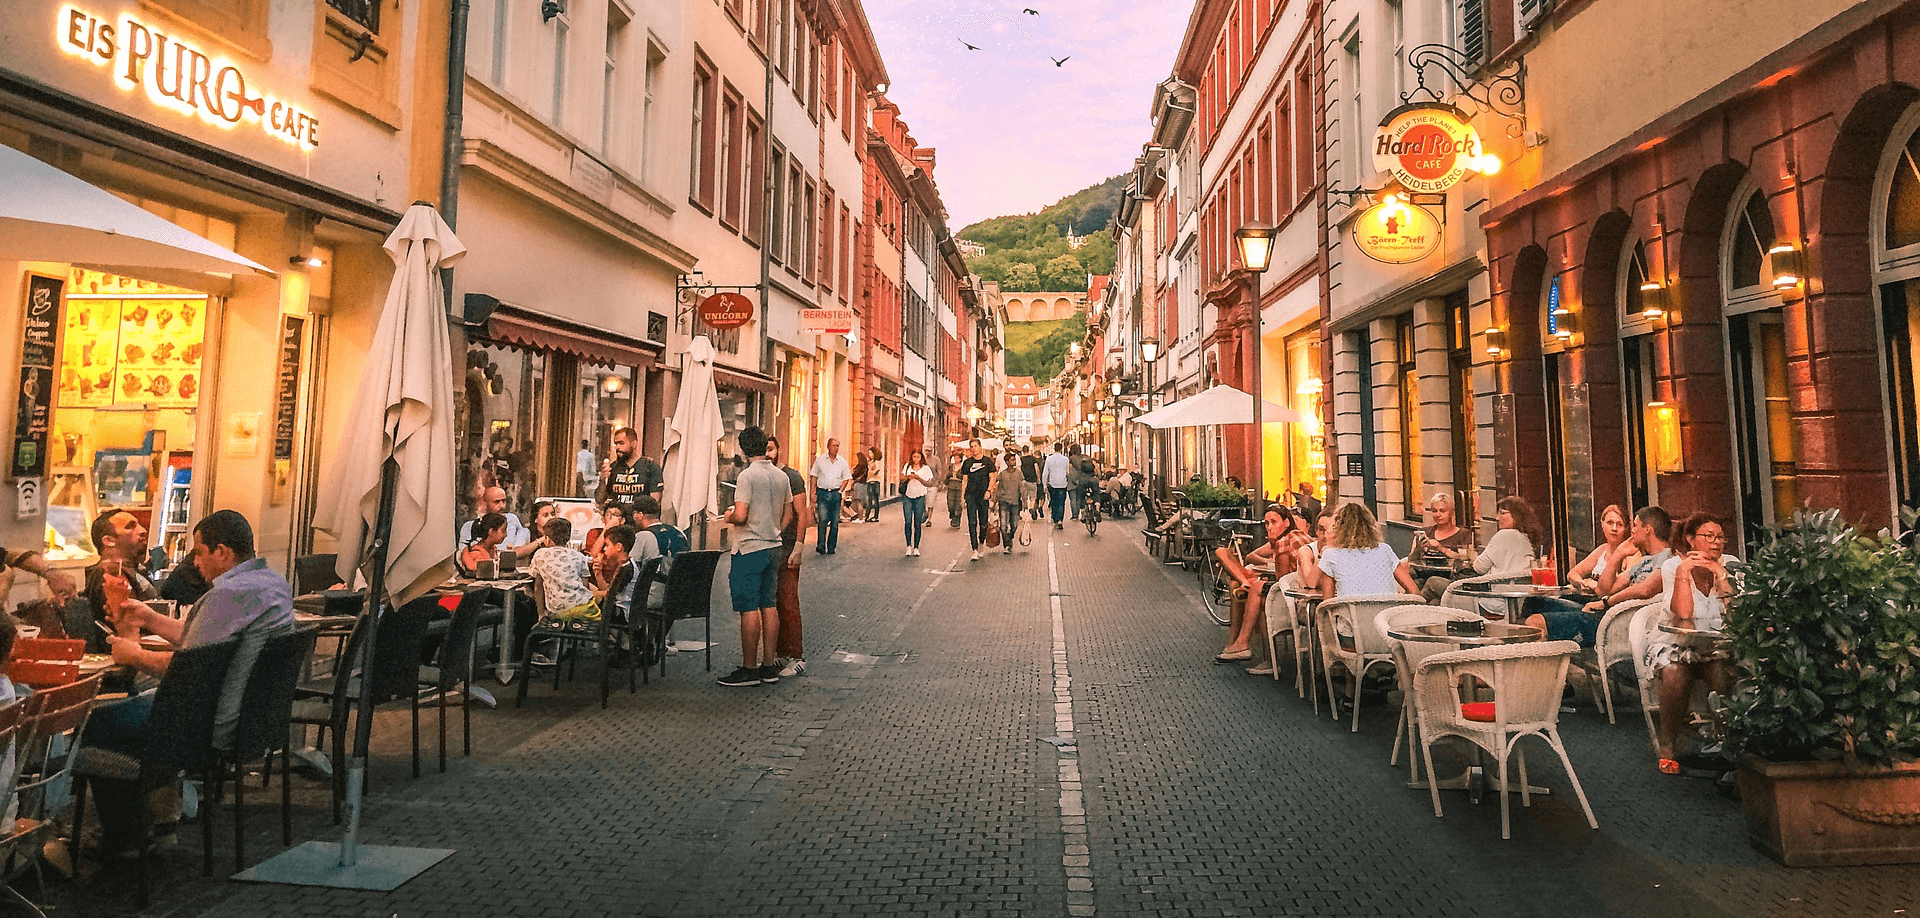 Compare prices and choose.